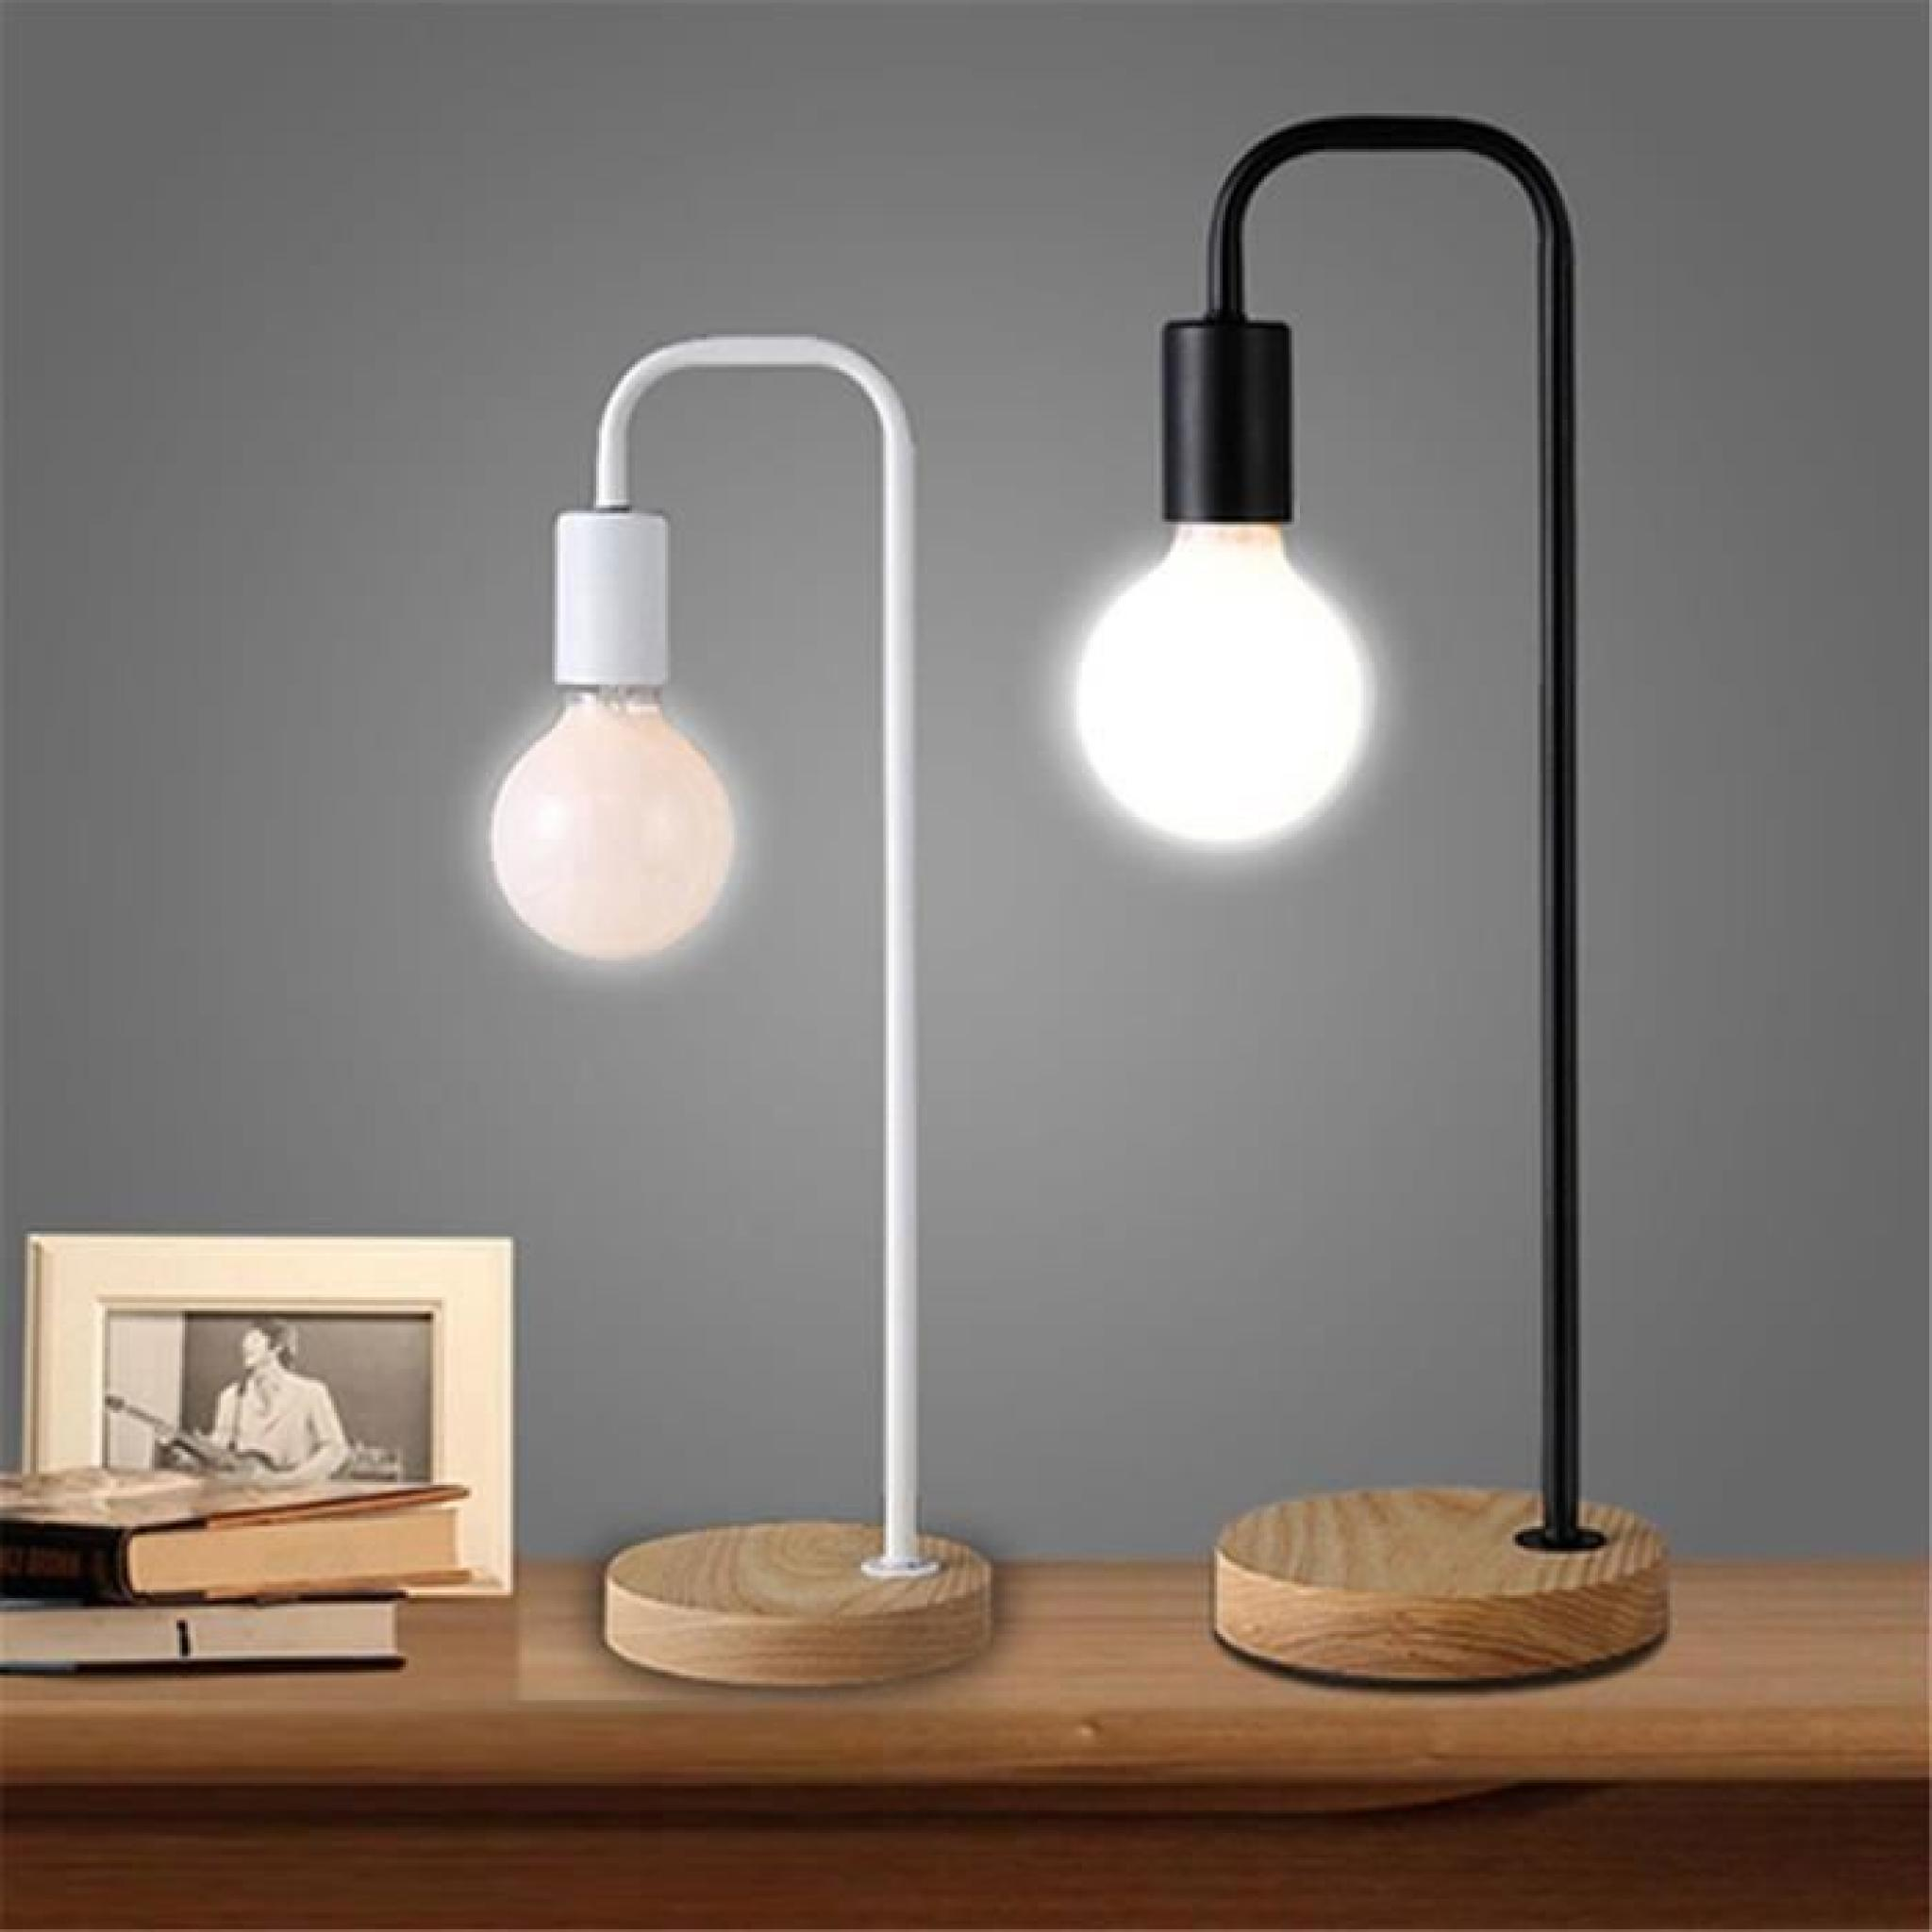 Ferandhome lampe de table chevet m tallique moderne lumi re pour etude lecture bureau chambre - Table de chevet moderne ...